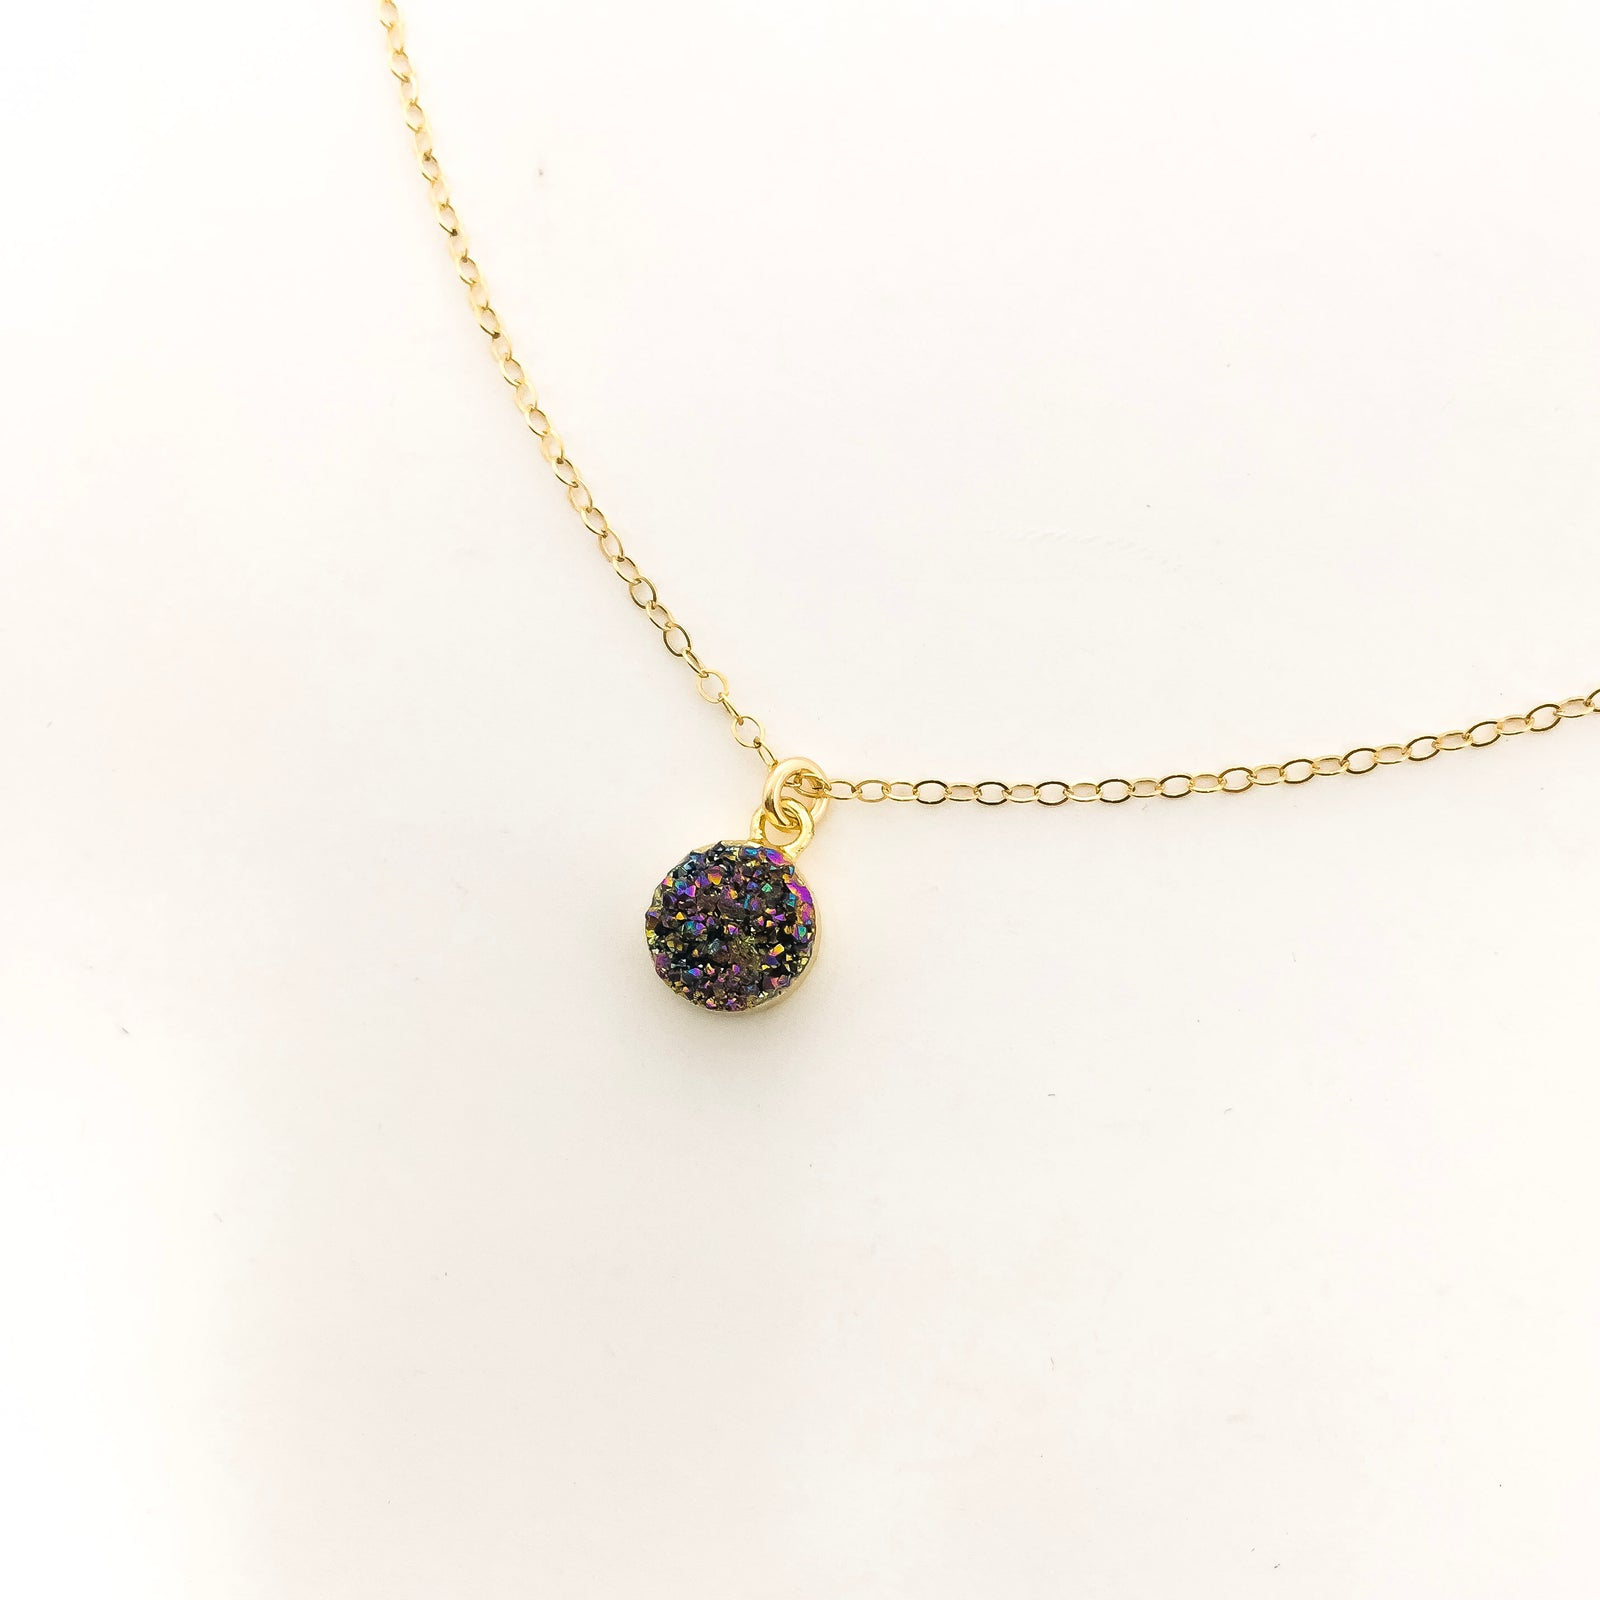 SPARKLE DRUZY STONE SPHERE 14K GOLD-FILLED NECKLACE